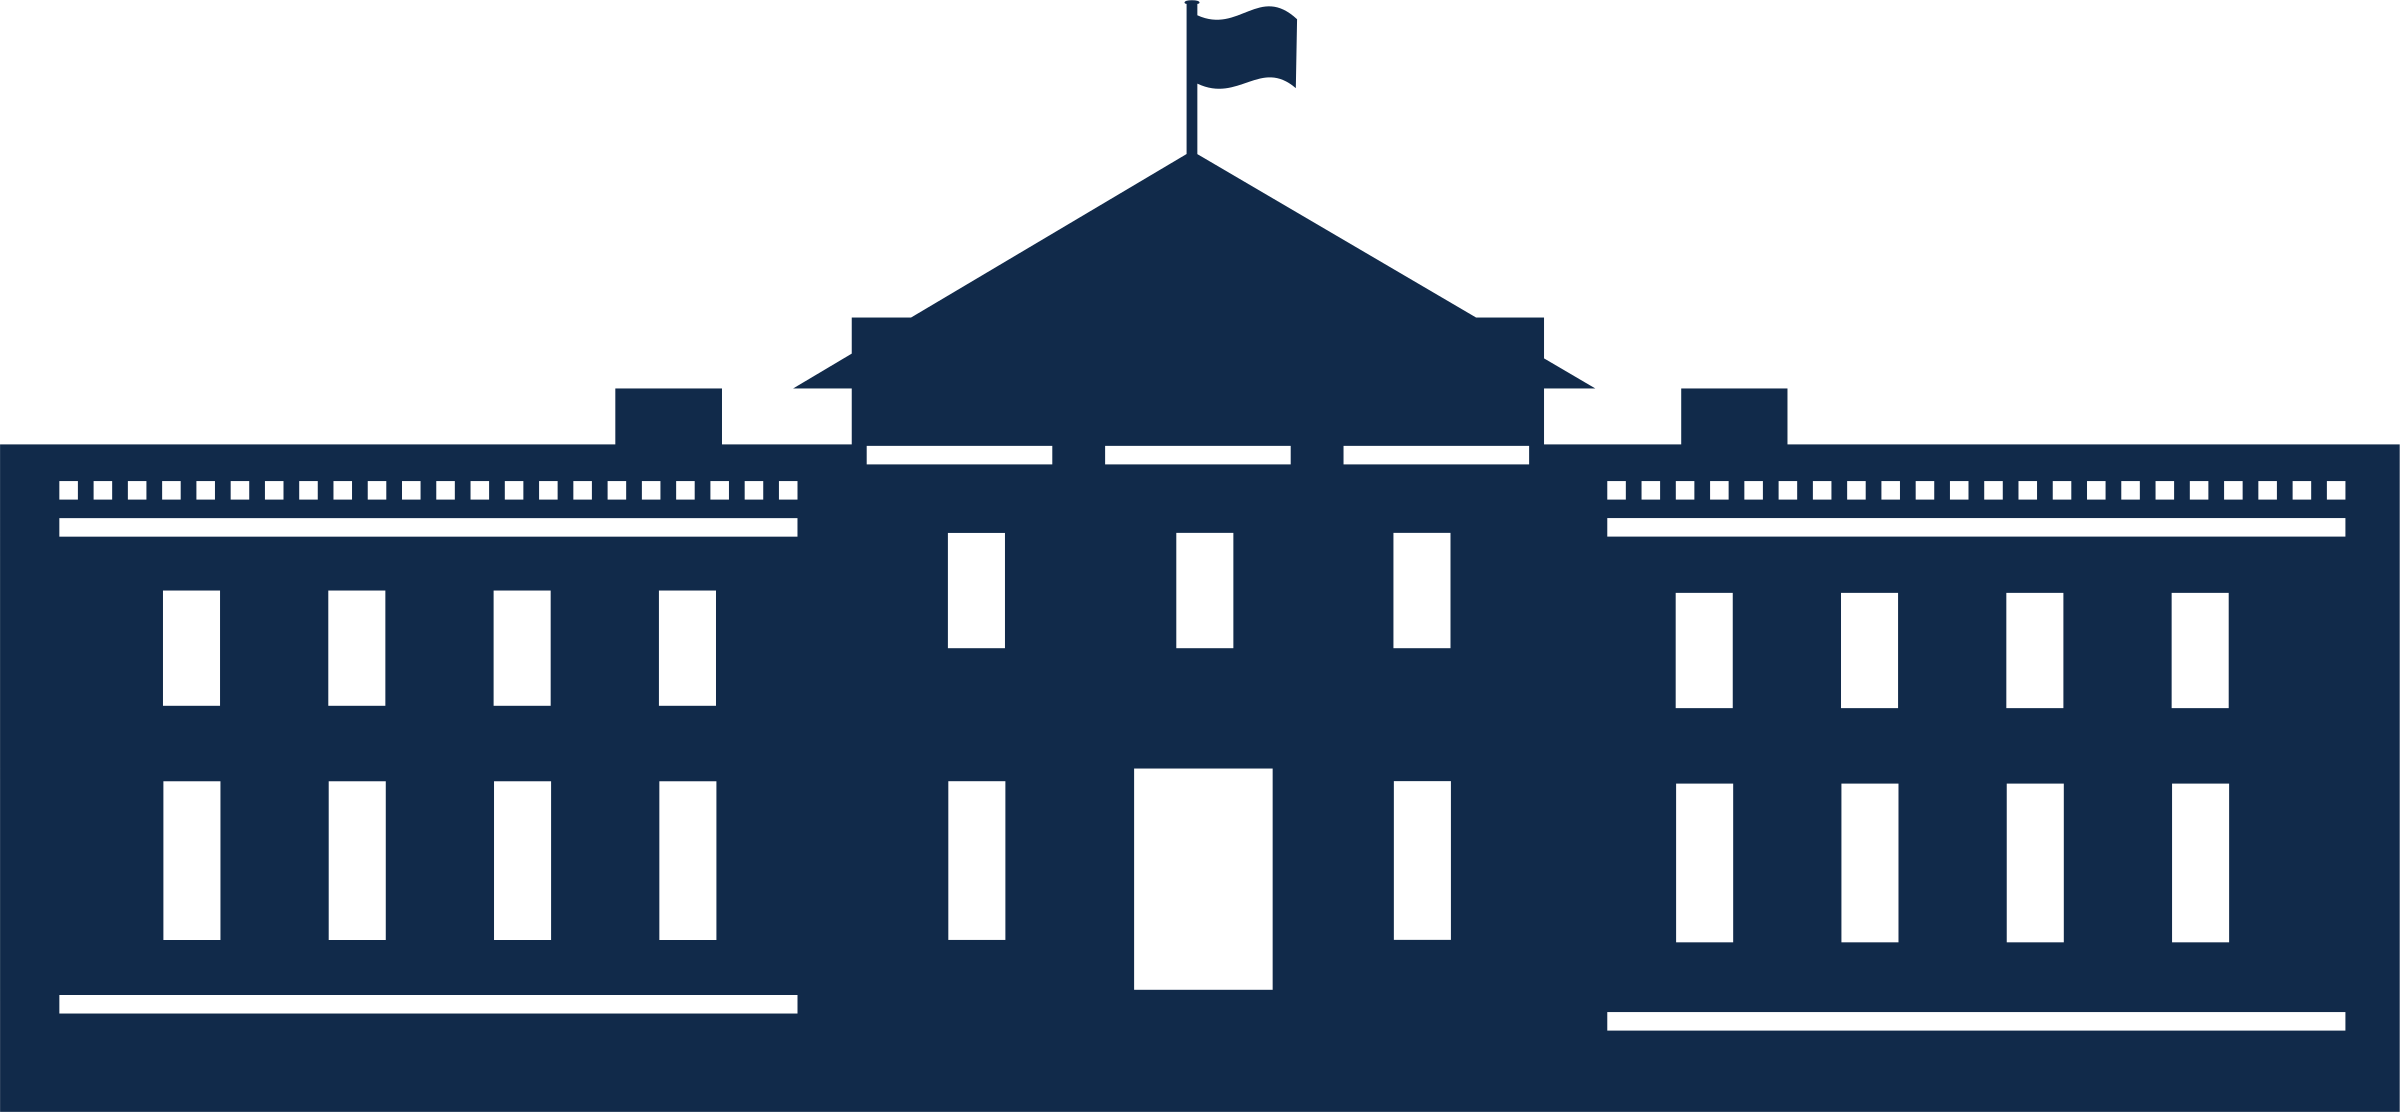 Congress house clipart png royalty free library Clipart - Whitehouse Silhouette png royalty free library